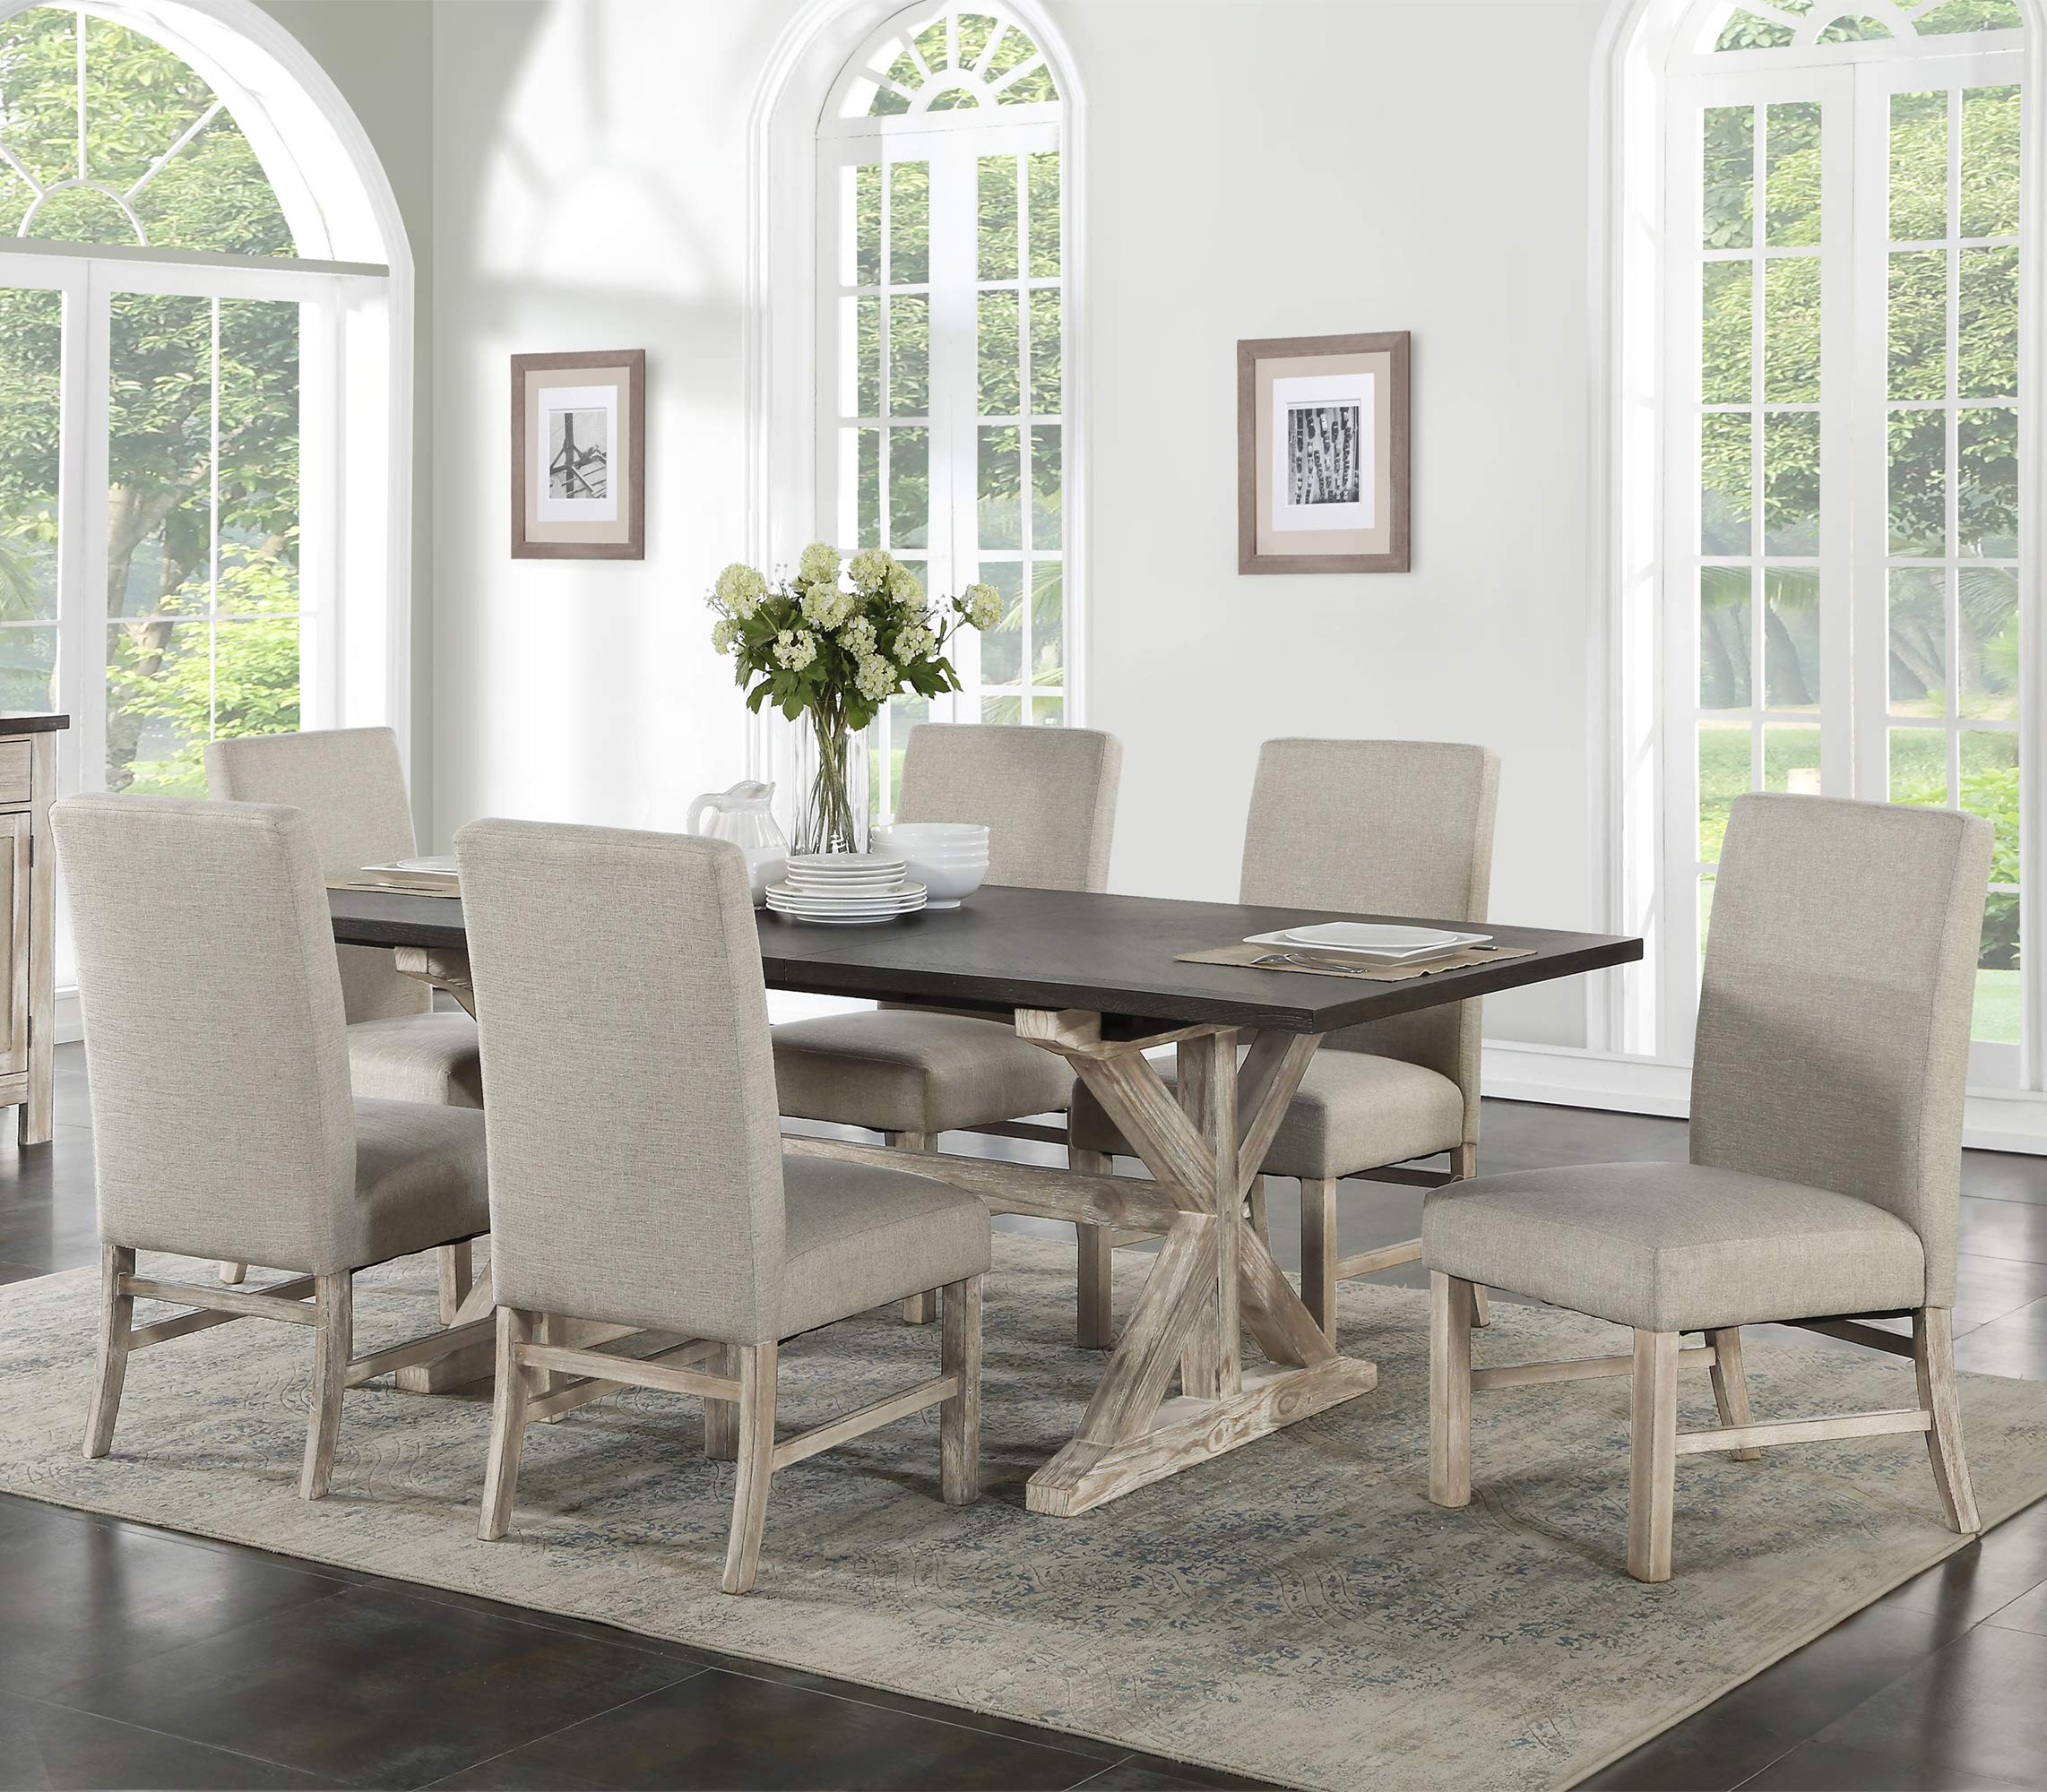 Cambridge Ellington 6 Fabric Chairs 7-Piece Dining Set with Expandable Trestle Table, Weathered white by CAMBRIDGE